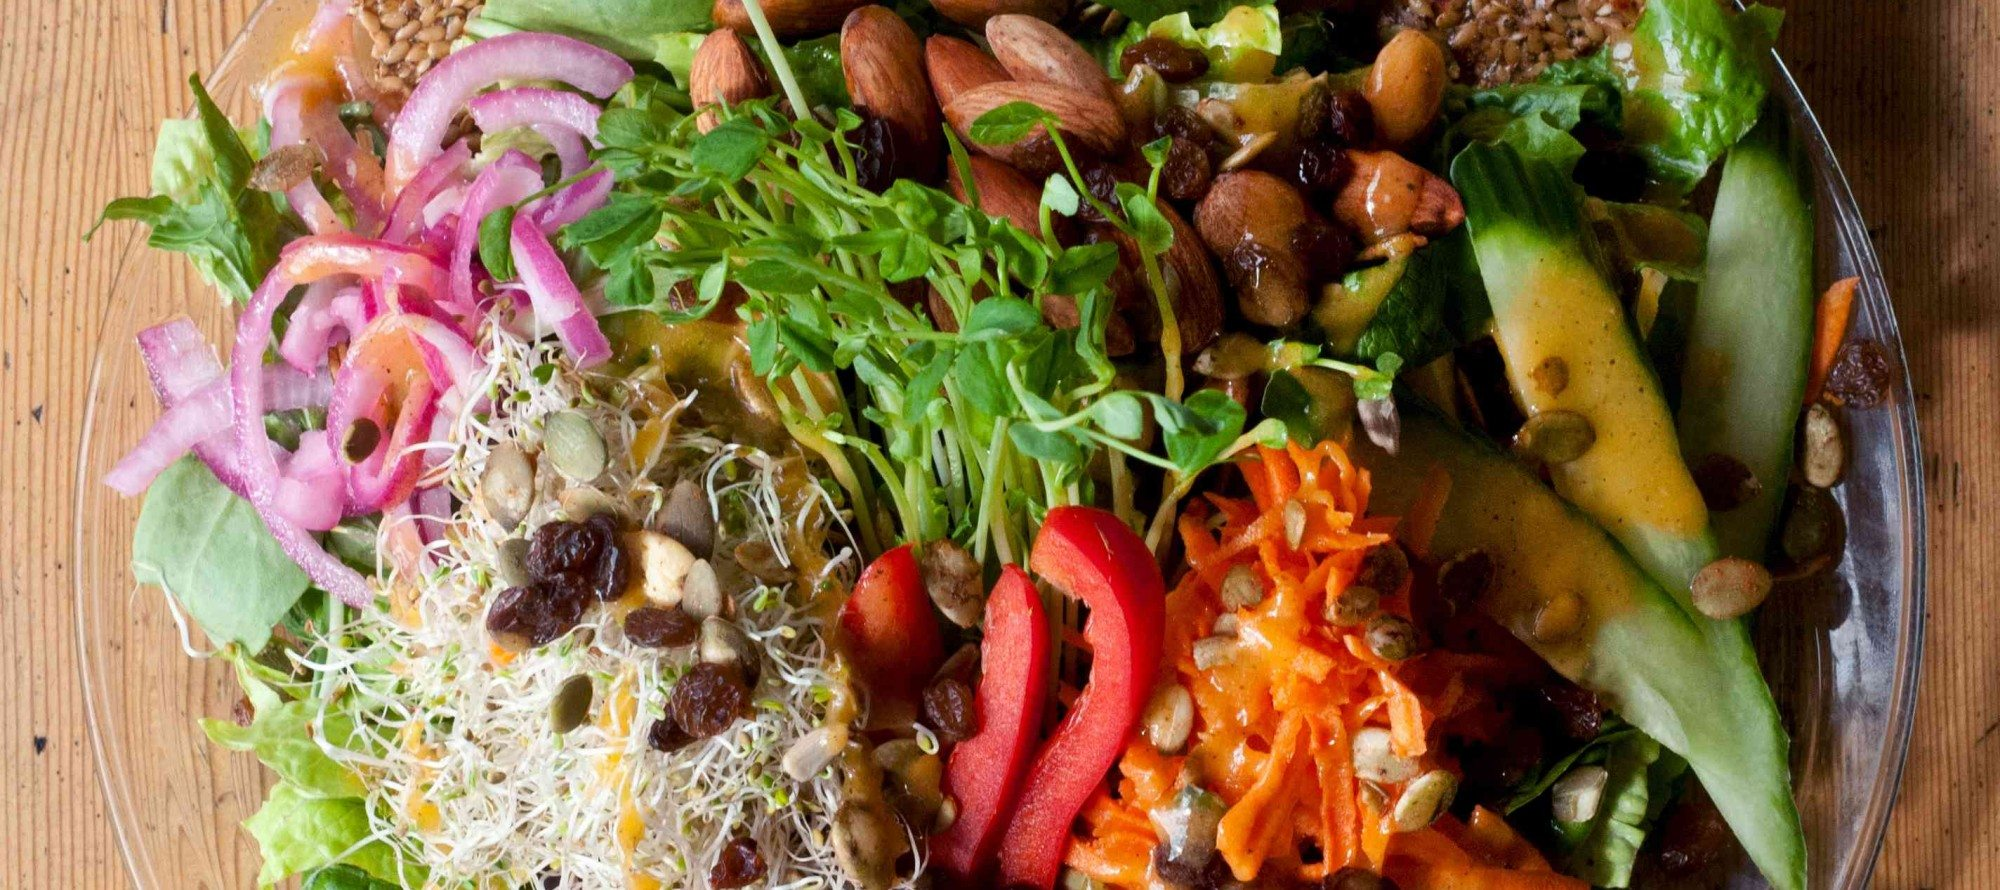 5 top vegan spots from Ottawa Magazine's 2013 Eating & Drinking Guide